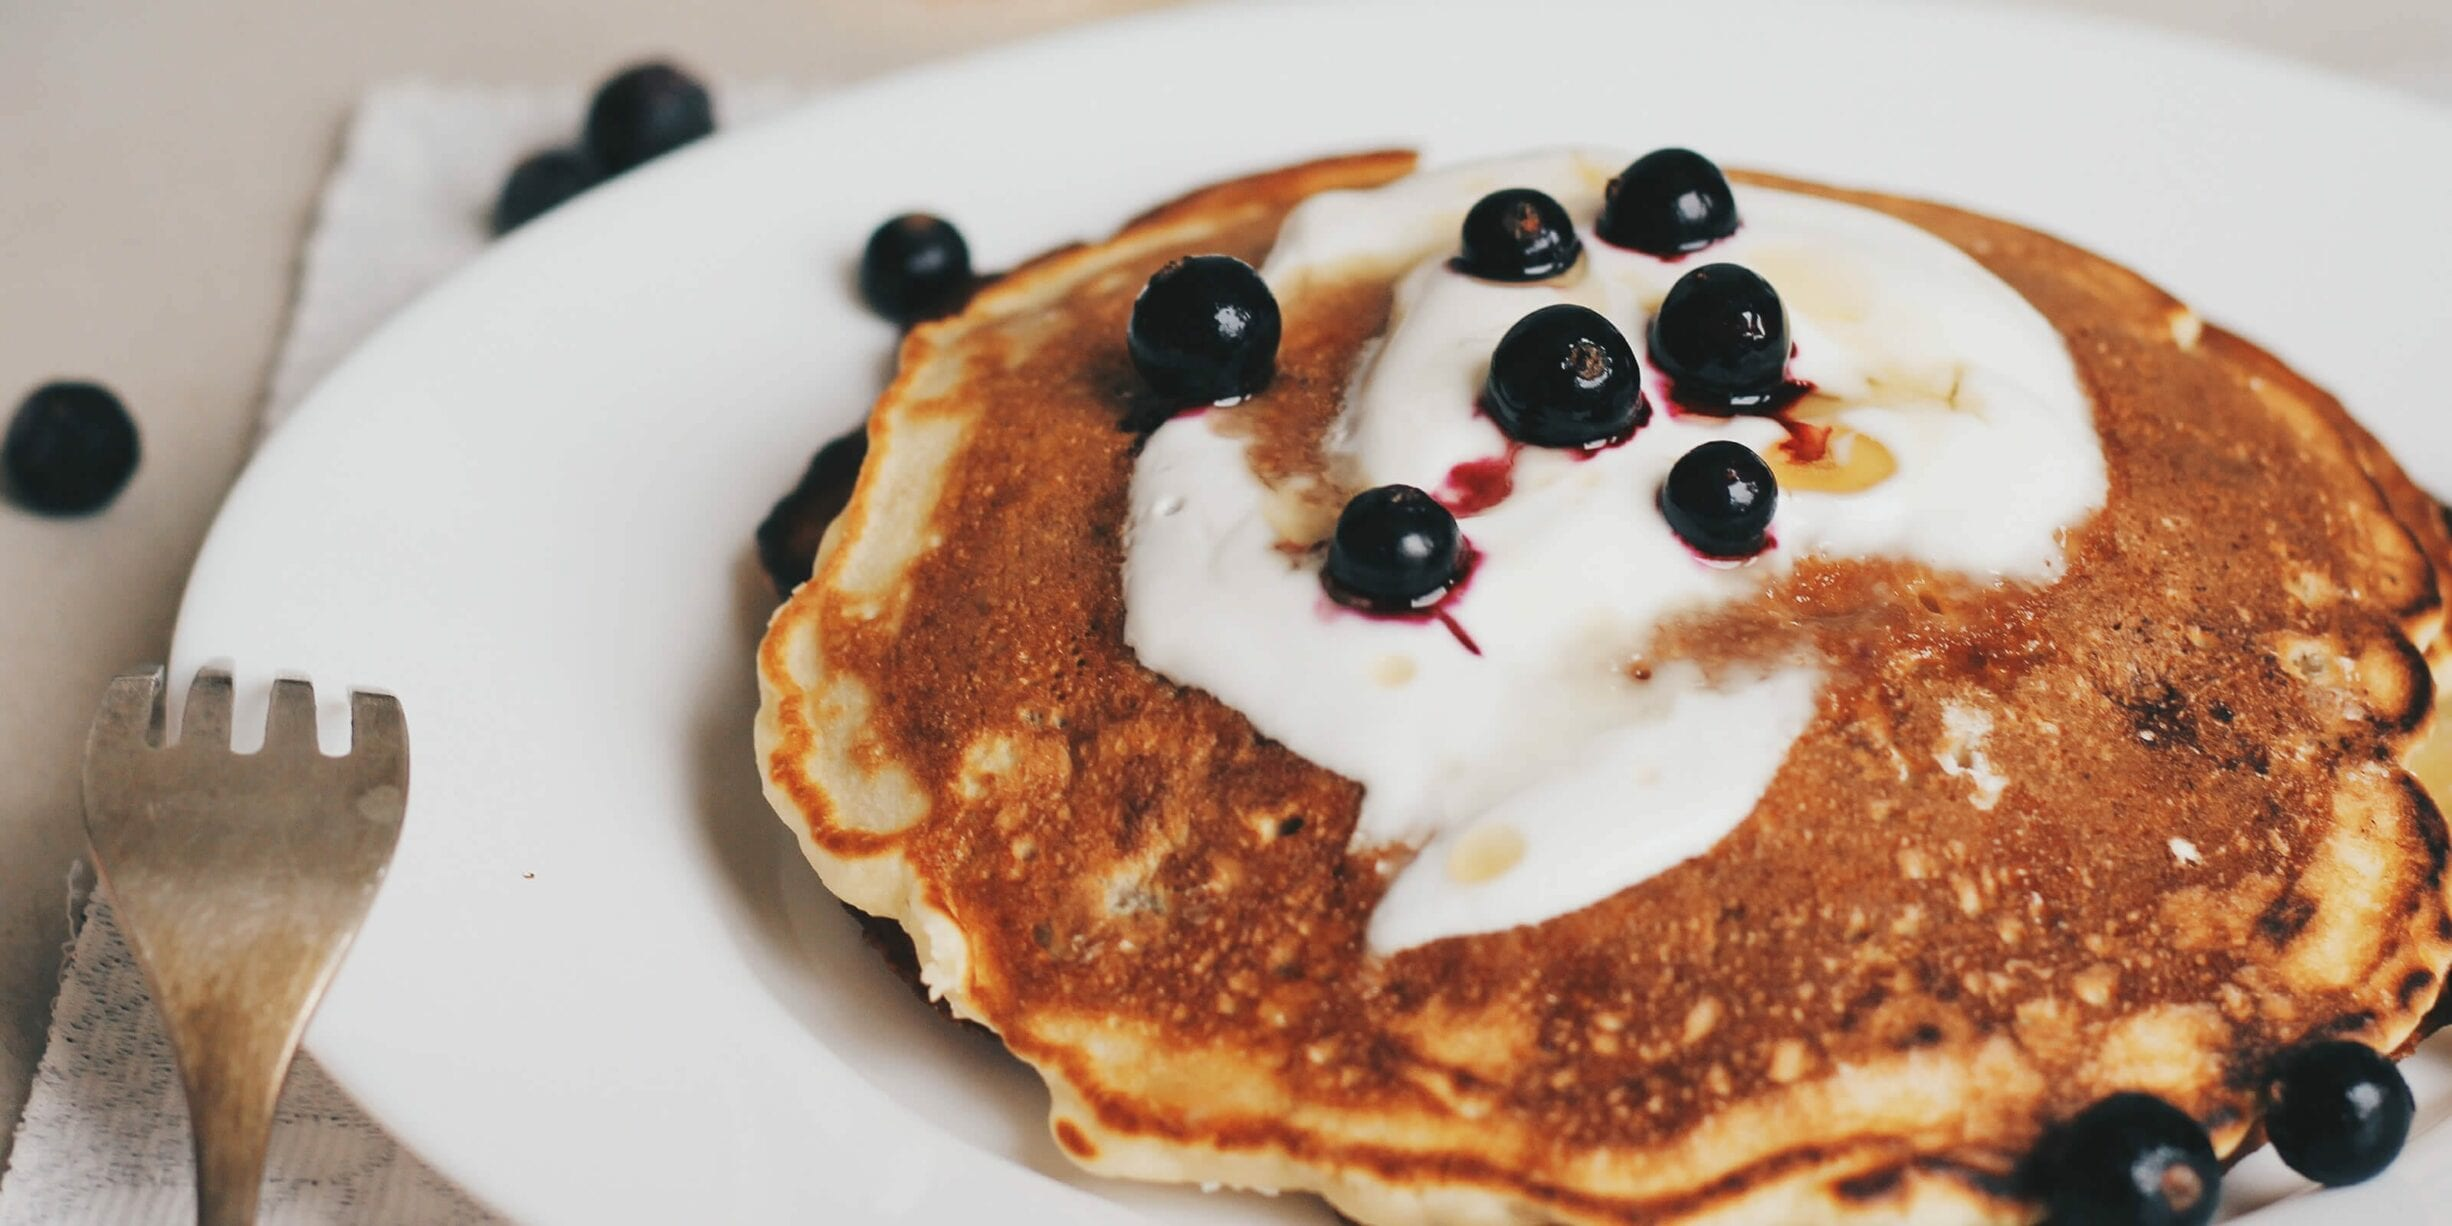 buckwheat pancake with blueberries and butter